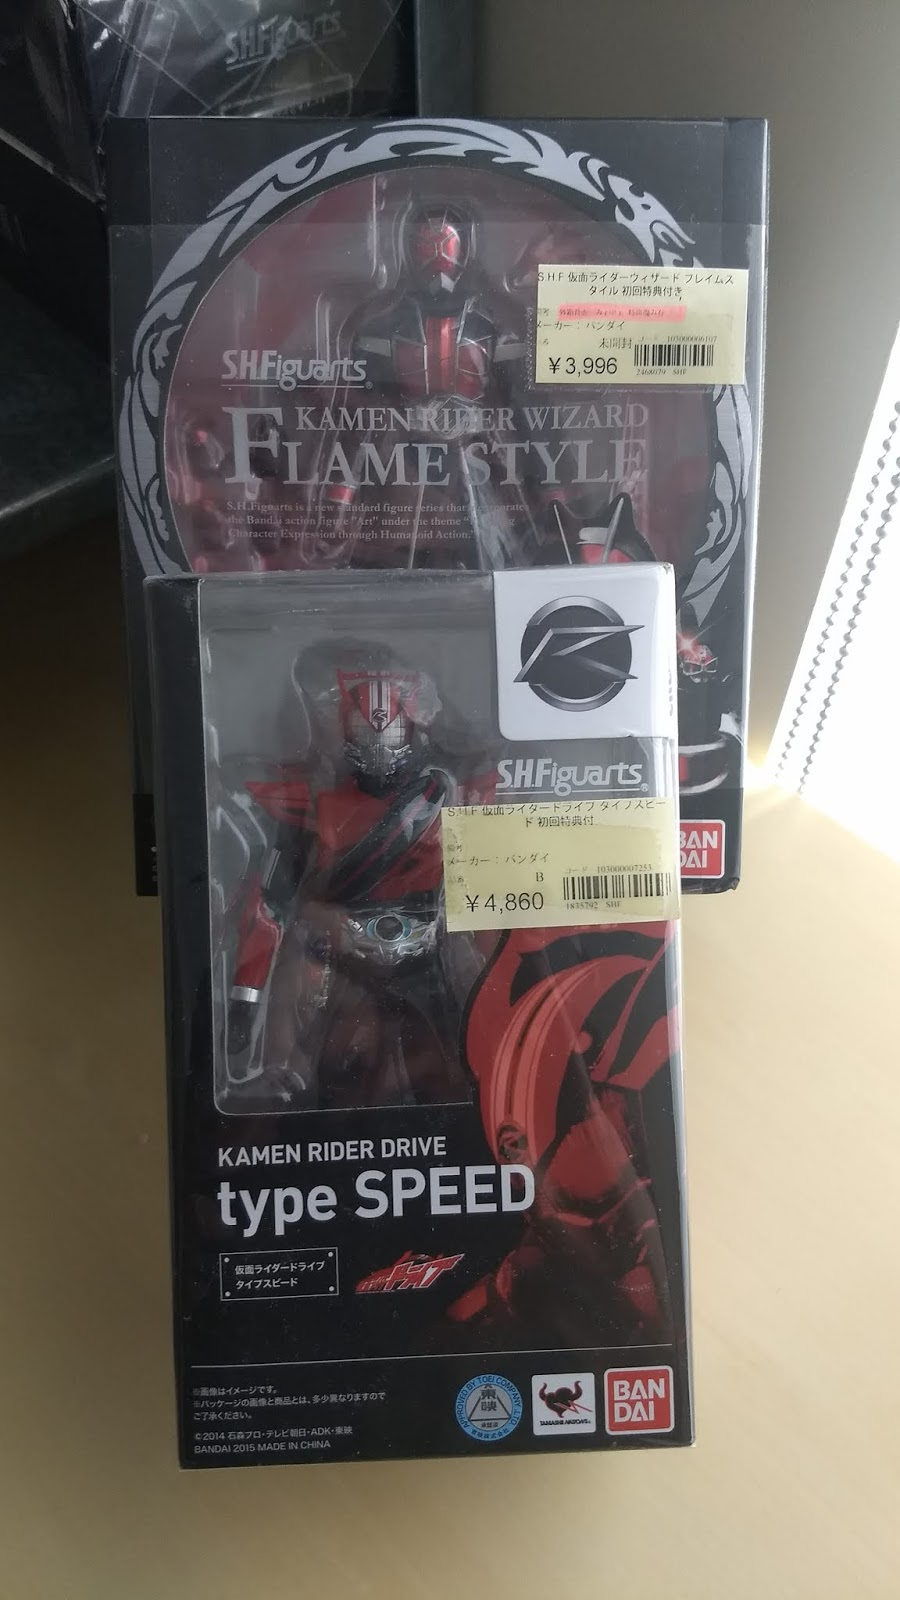 S H Figuarts Collection Revisited - Heisei Rider Figures